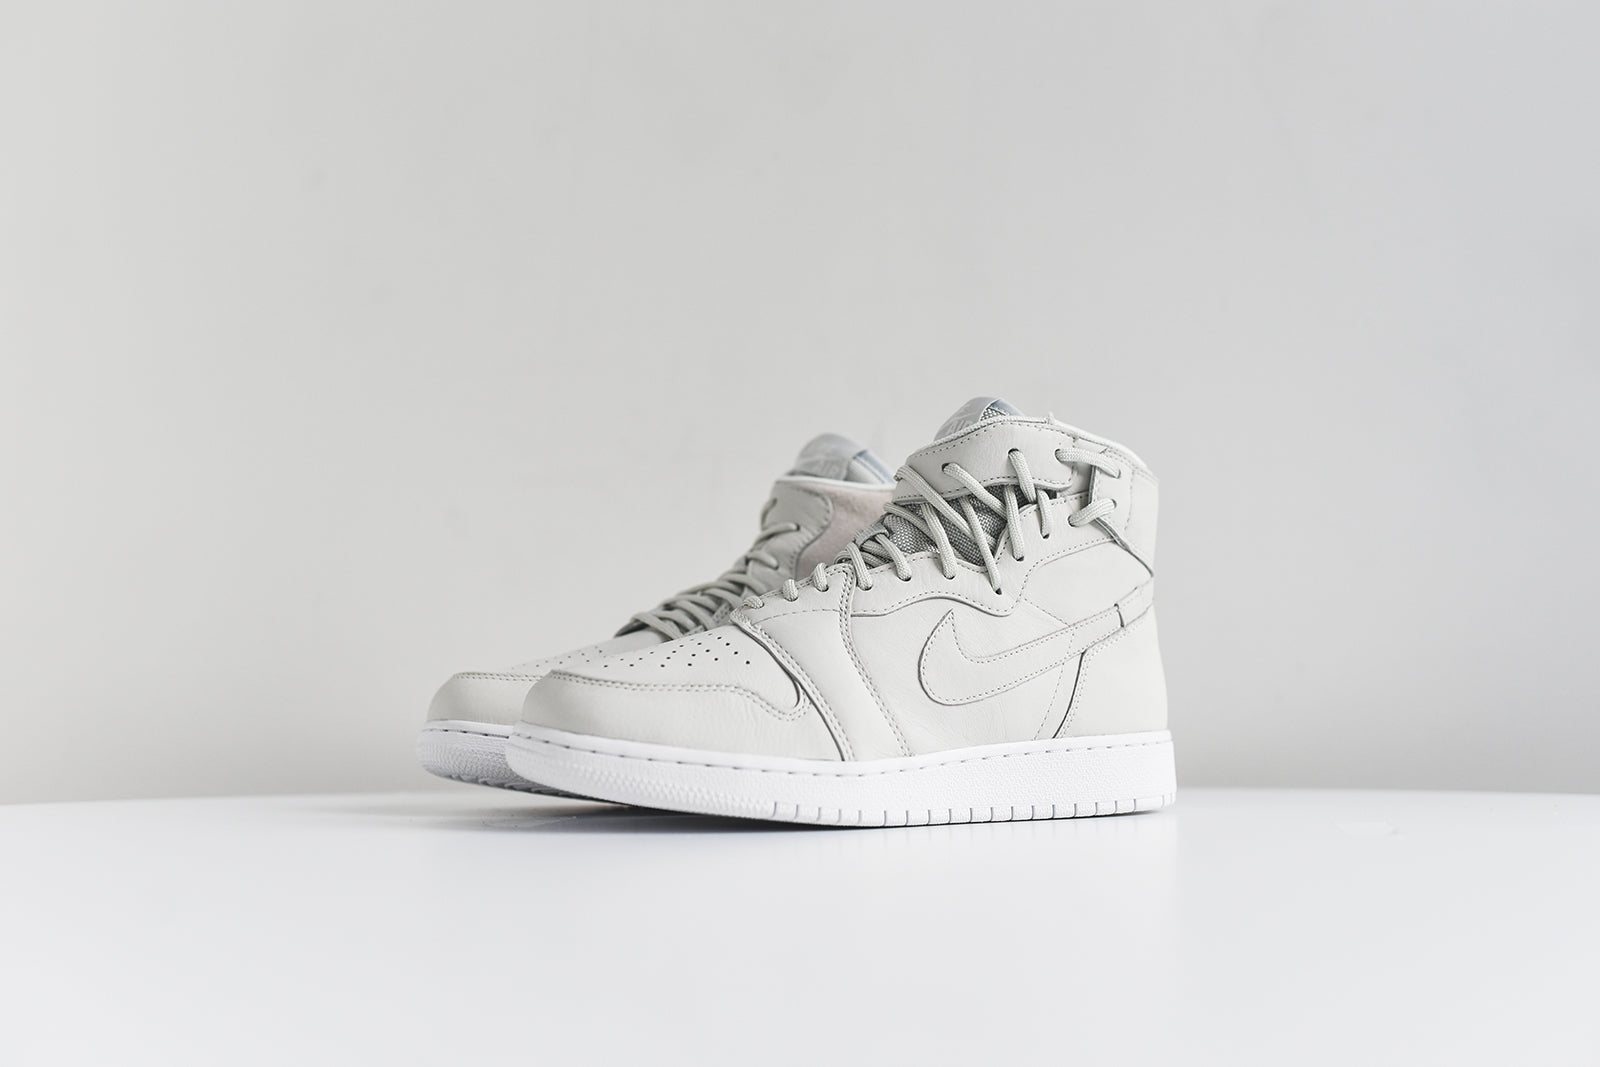 Nike Women's Air Jordan 1 Rebel Xx High Top Sneaker hmMVkmfnJ3